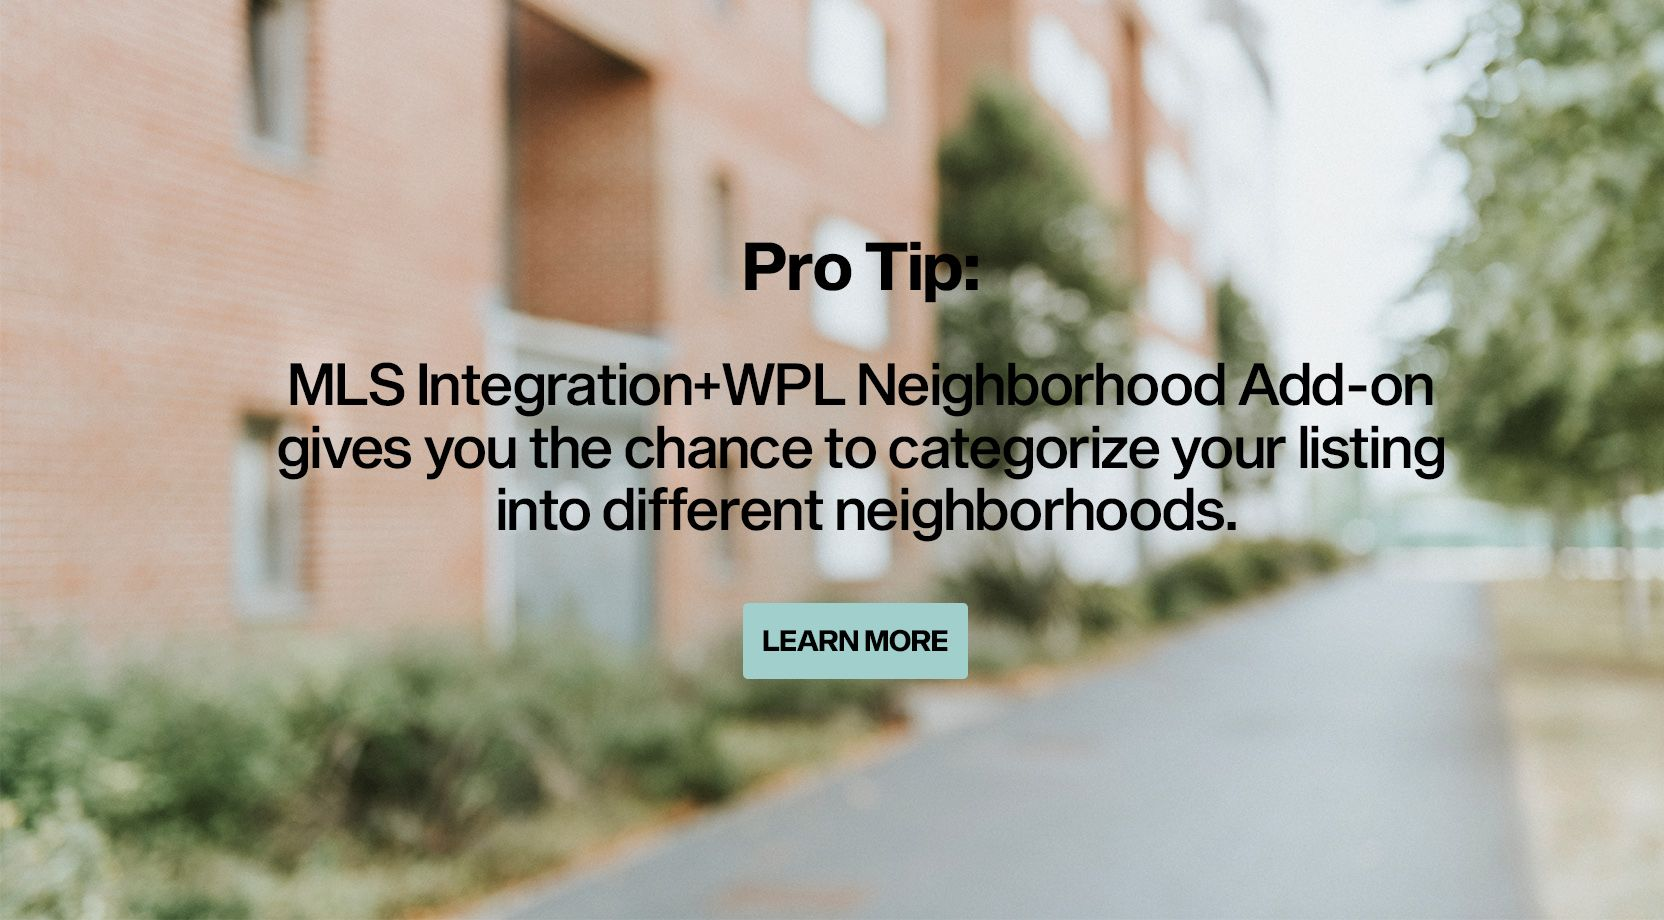 Organic MLS Integration and Neighborhood Add-on